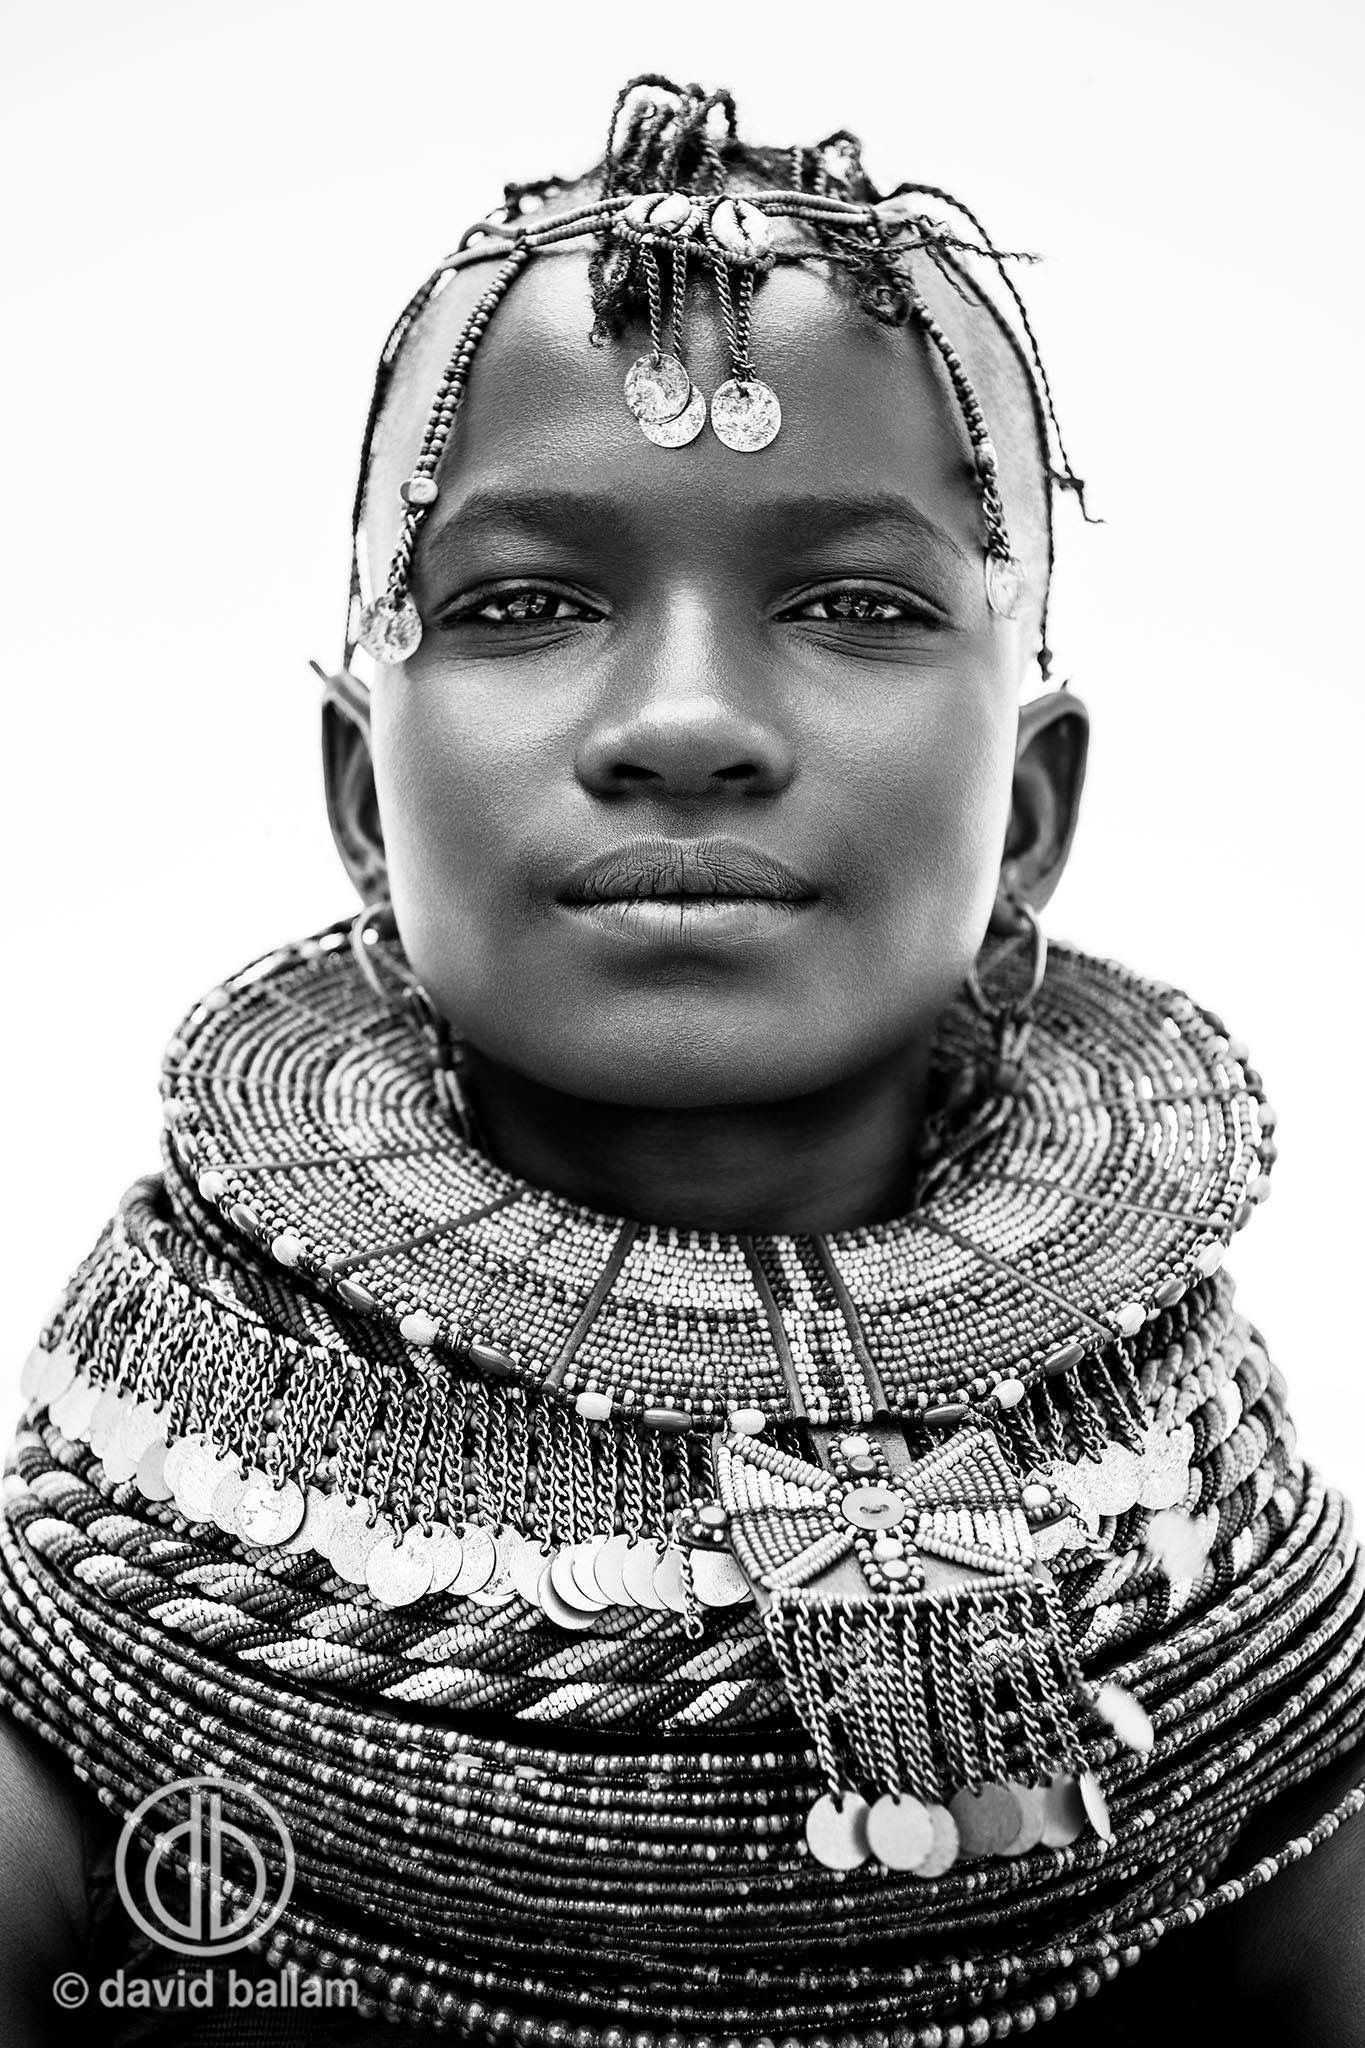 Pin by Hagit Yust on African Style Tribal photography